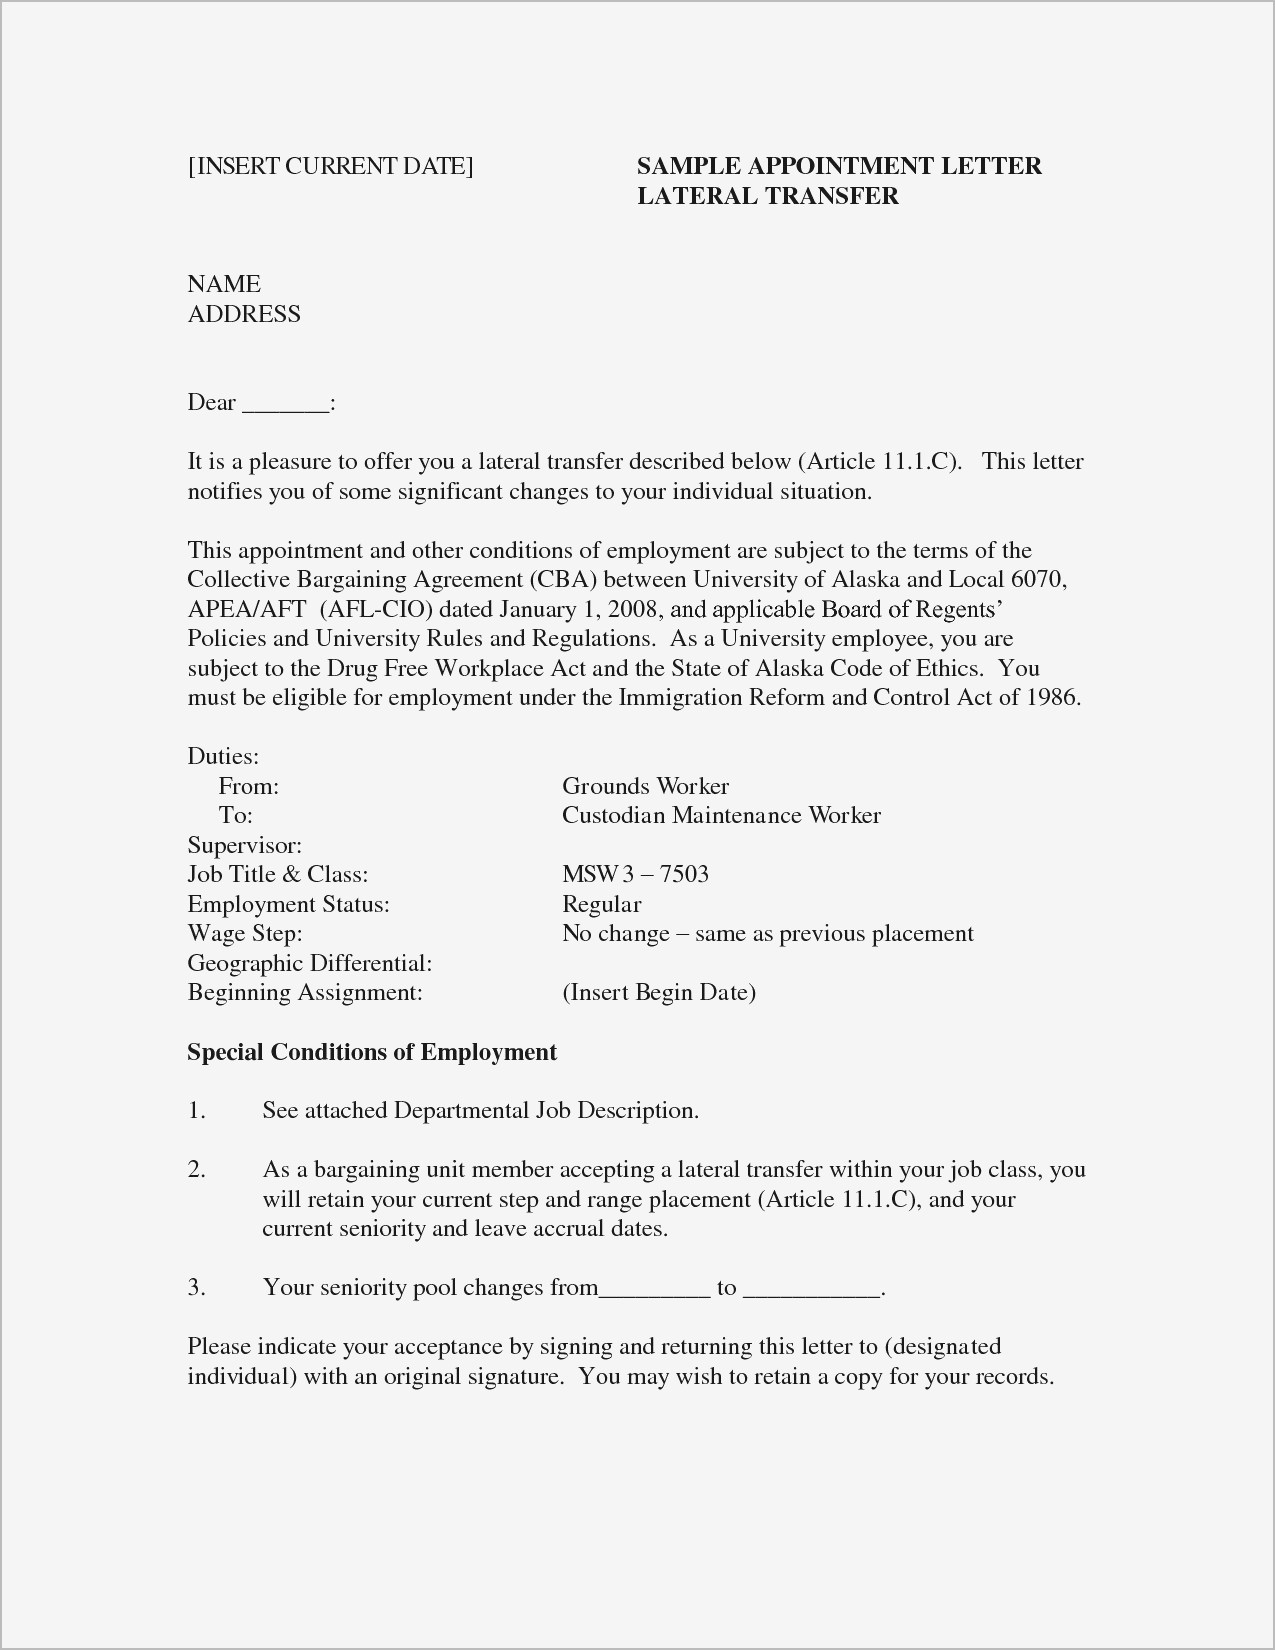 sample child support letter template Collection-Free Job Resume Template Cover Letter Template Word 2014 Fresh Relocation Cover Letters Od 8-q